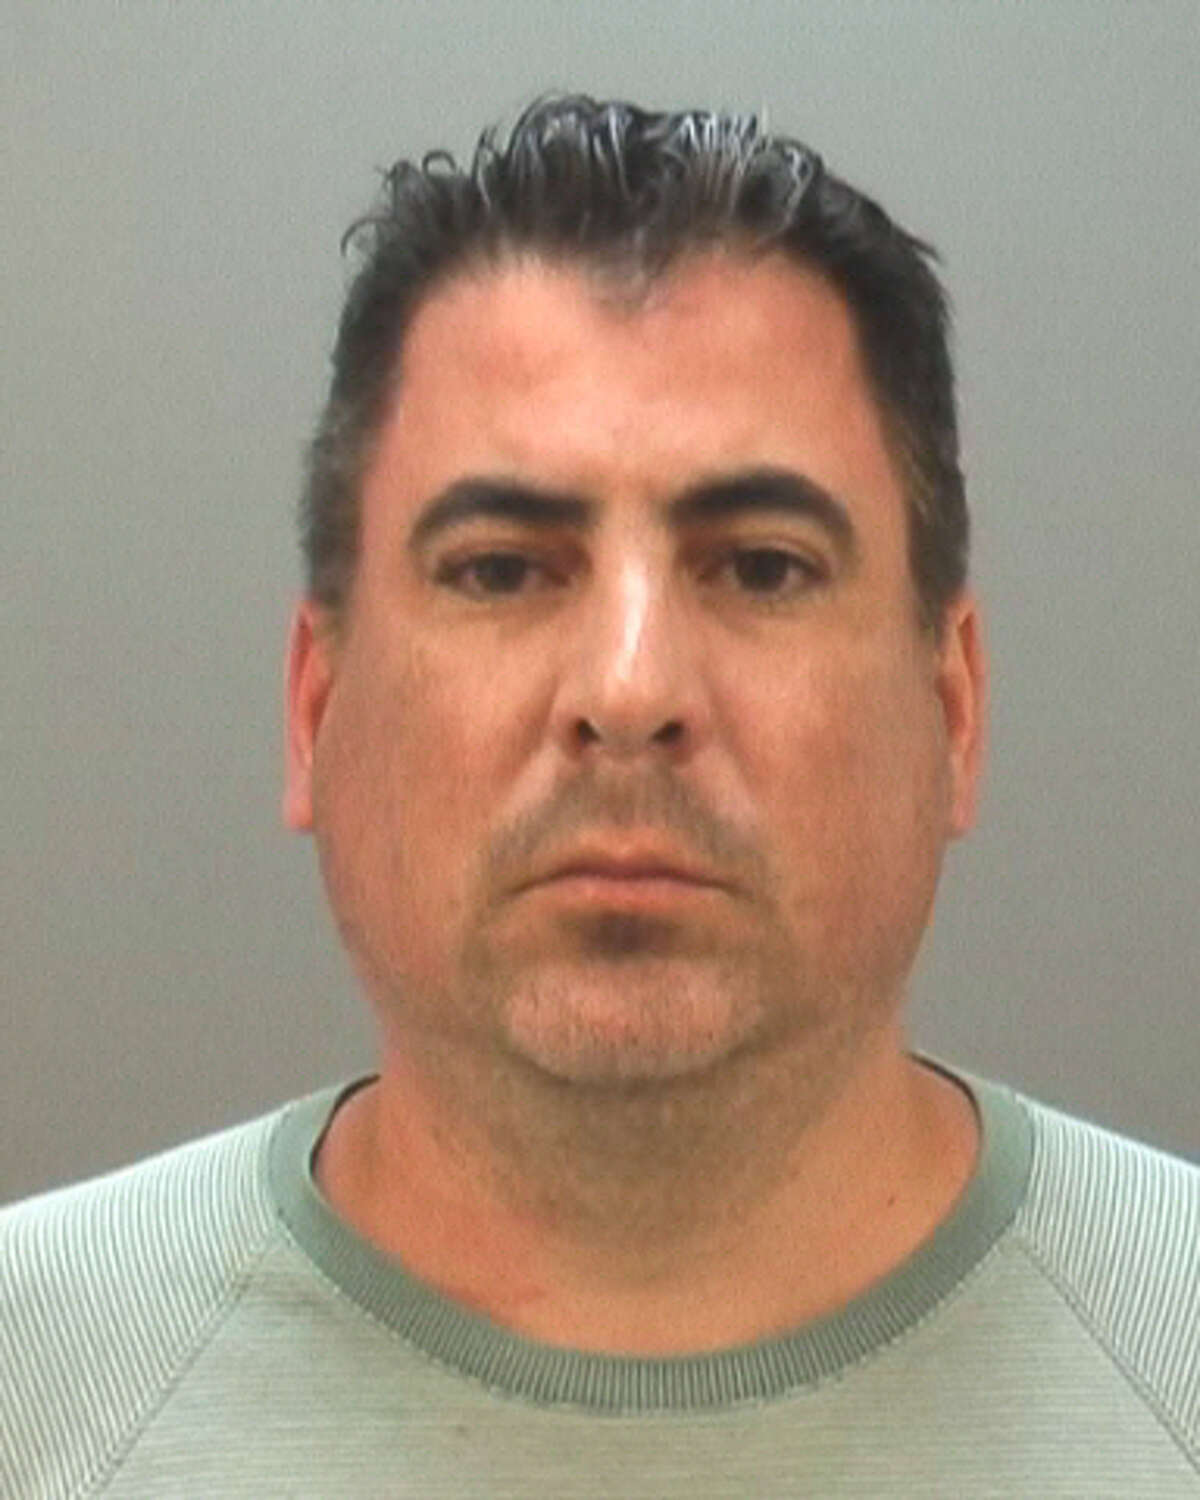 San Antonio Police Department Detective James Furr was given an indefinite suspension in February 2015 after being arrested on drunken driving charges in Kyle in 2013.Read more:Nine SAPD officers suspended in February